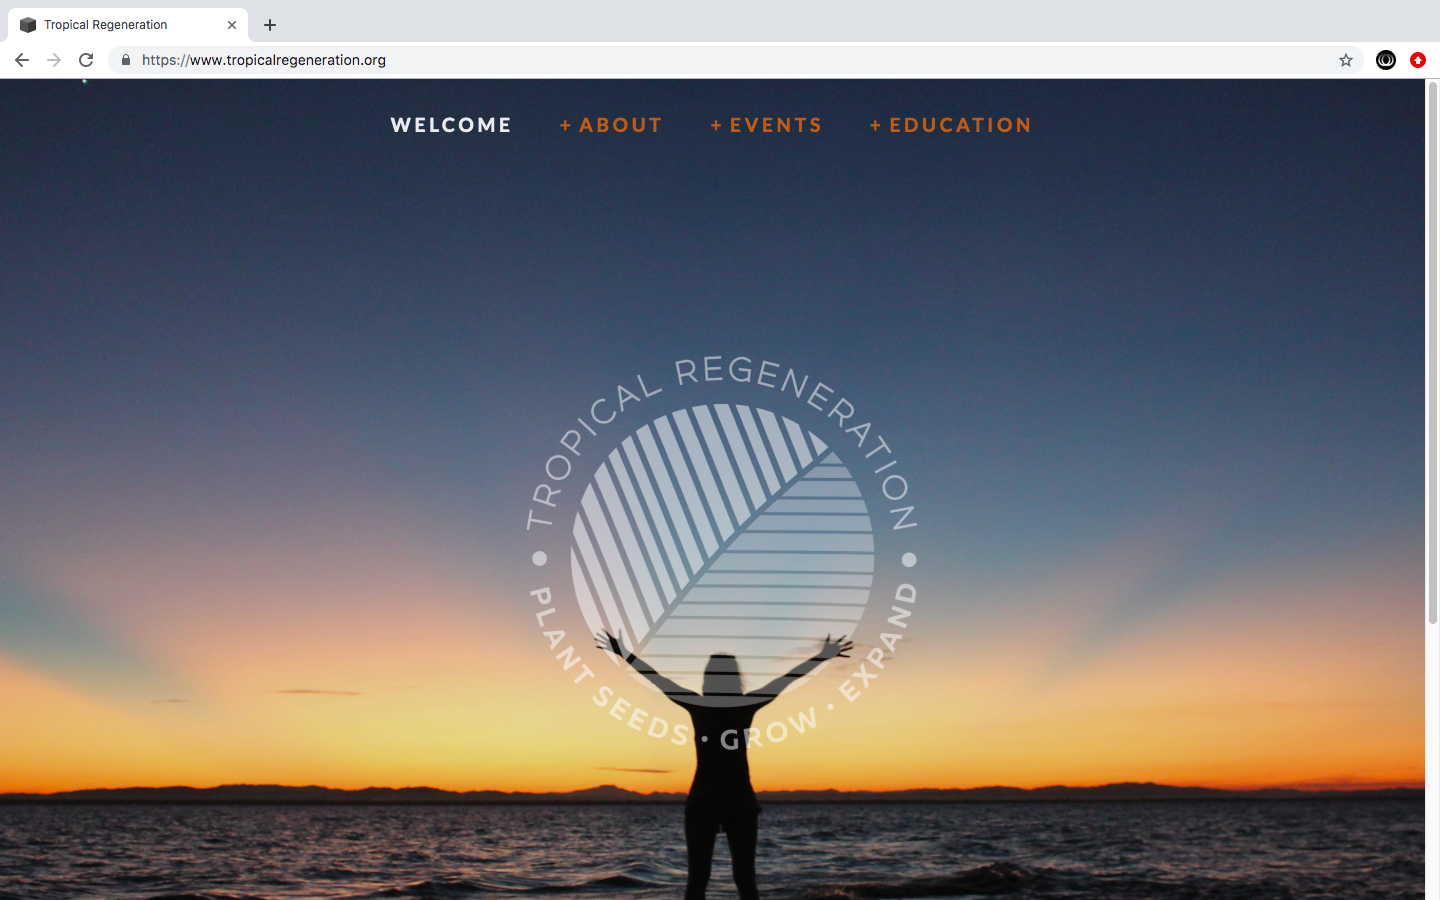 https://www.tropicalregeneration.org   Margot help me create my website choose a template, gave me advice on what the website should consist of, help me edit my content, empowered me. Together we co-created a beautiful website... So thankful for Margot and her services. Grateful for her artistic talents.